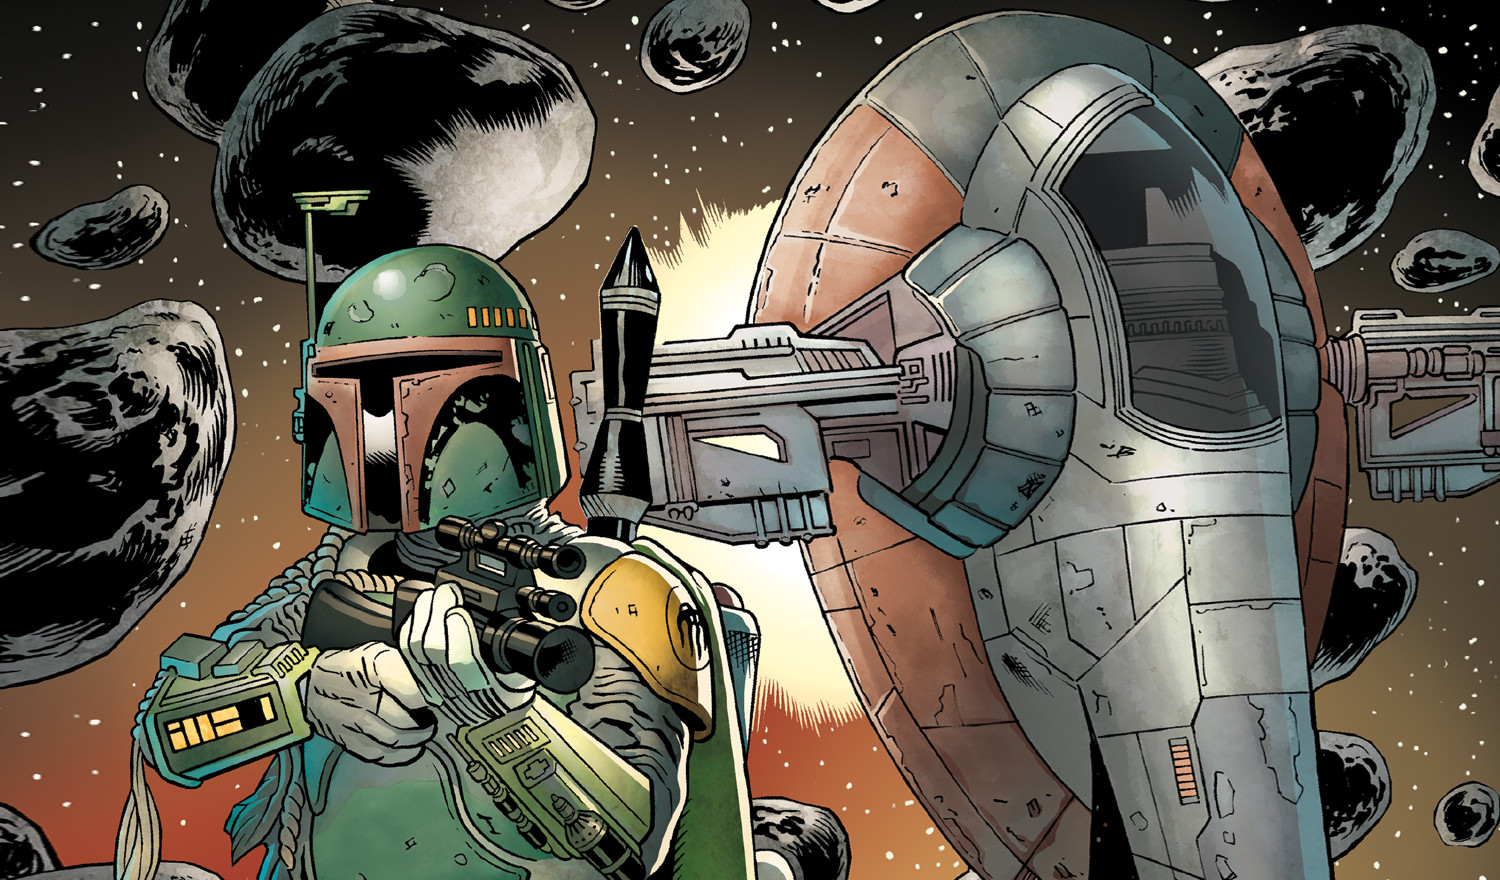 Boba Fett, Star Wars: The Empre Strikes Back